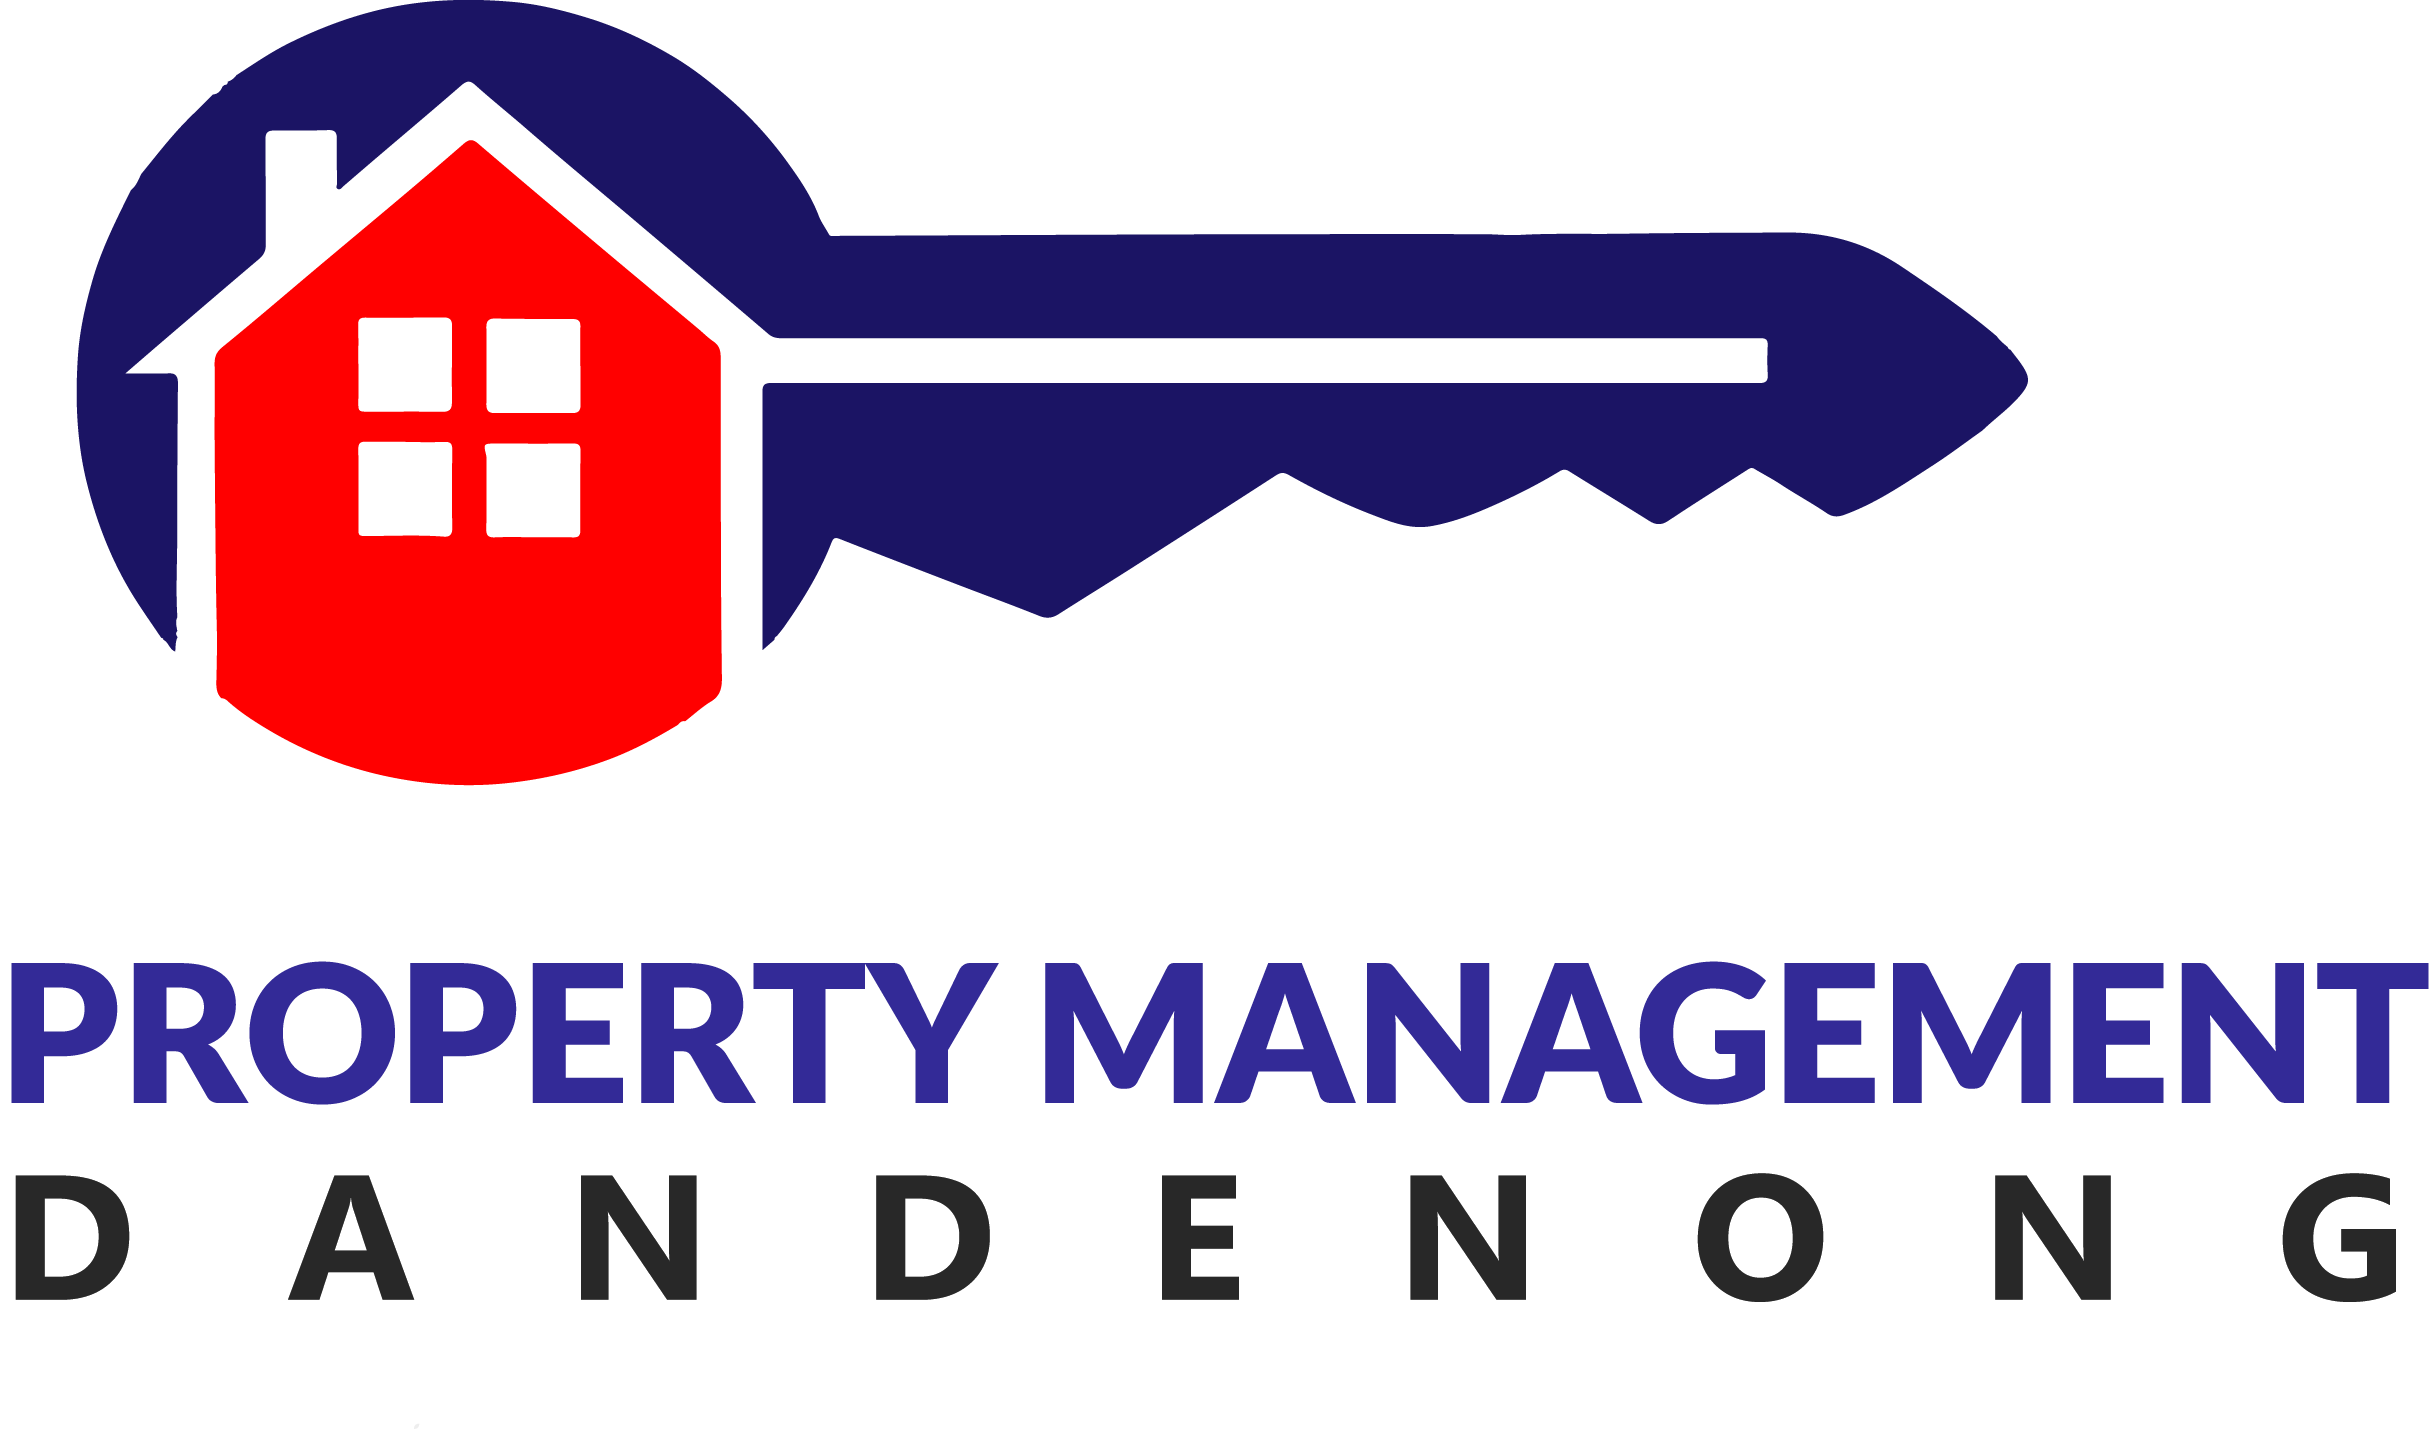 Rental Property Management Services in Greater Dandenong